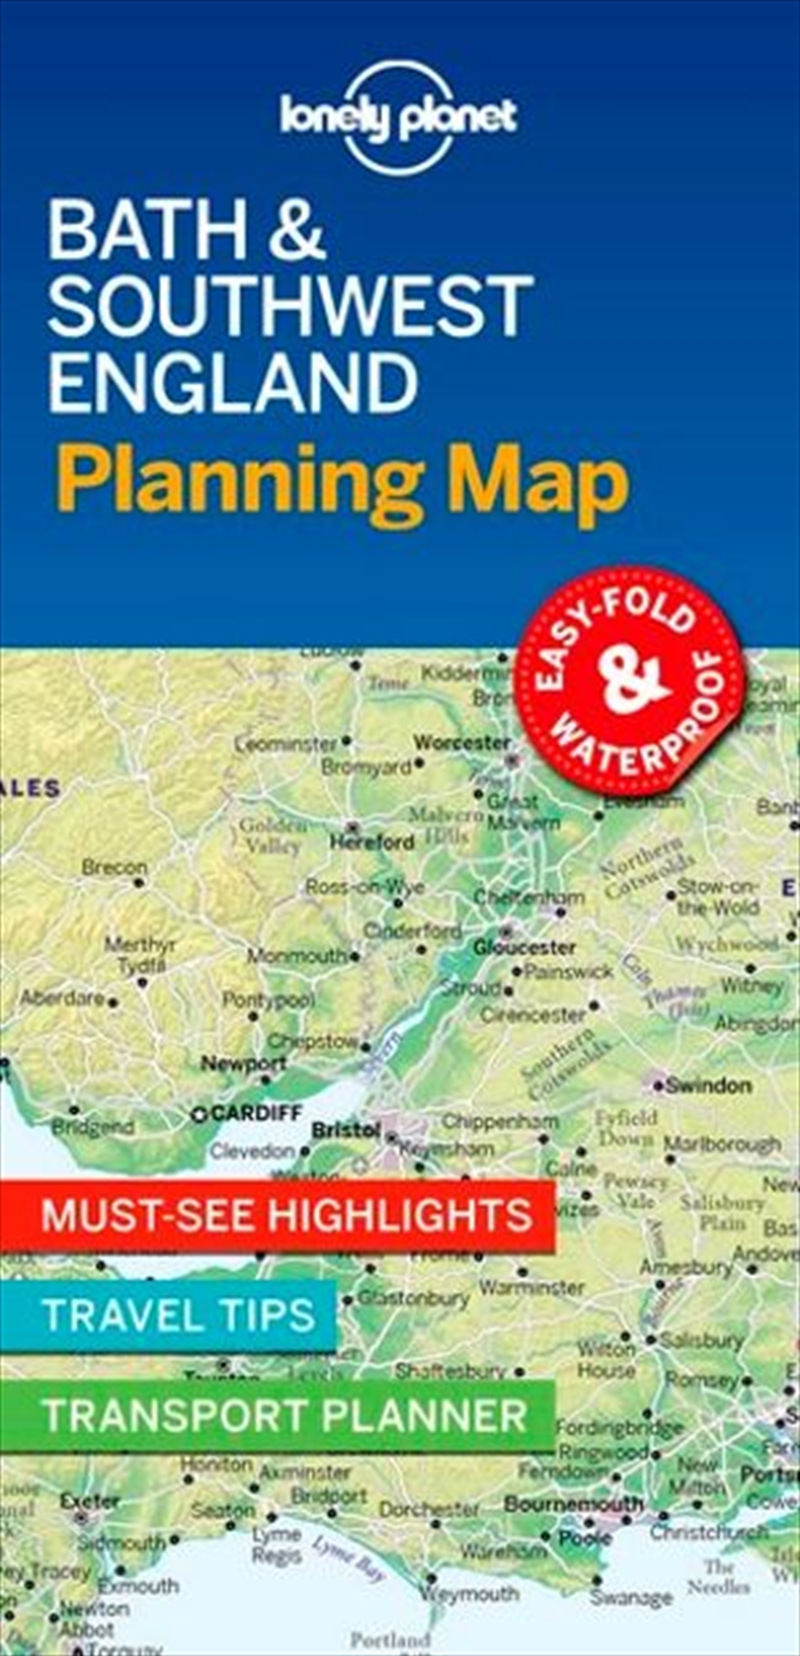 Lonely Planet Bath & Southwest England Planning Map | Sheet Map